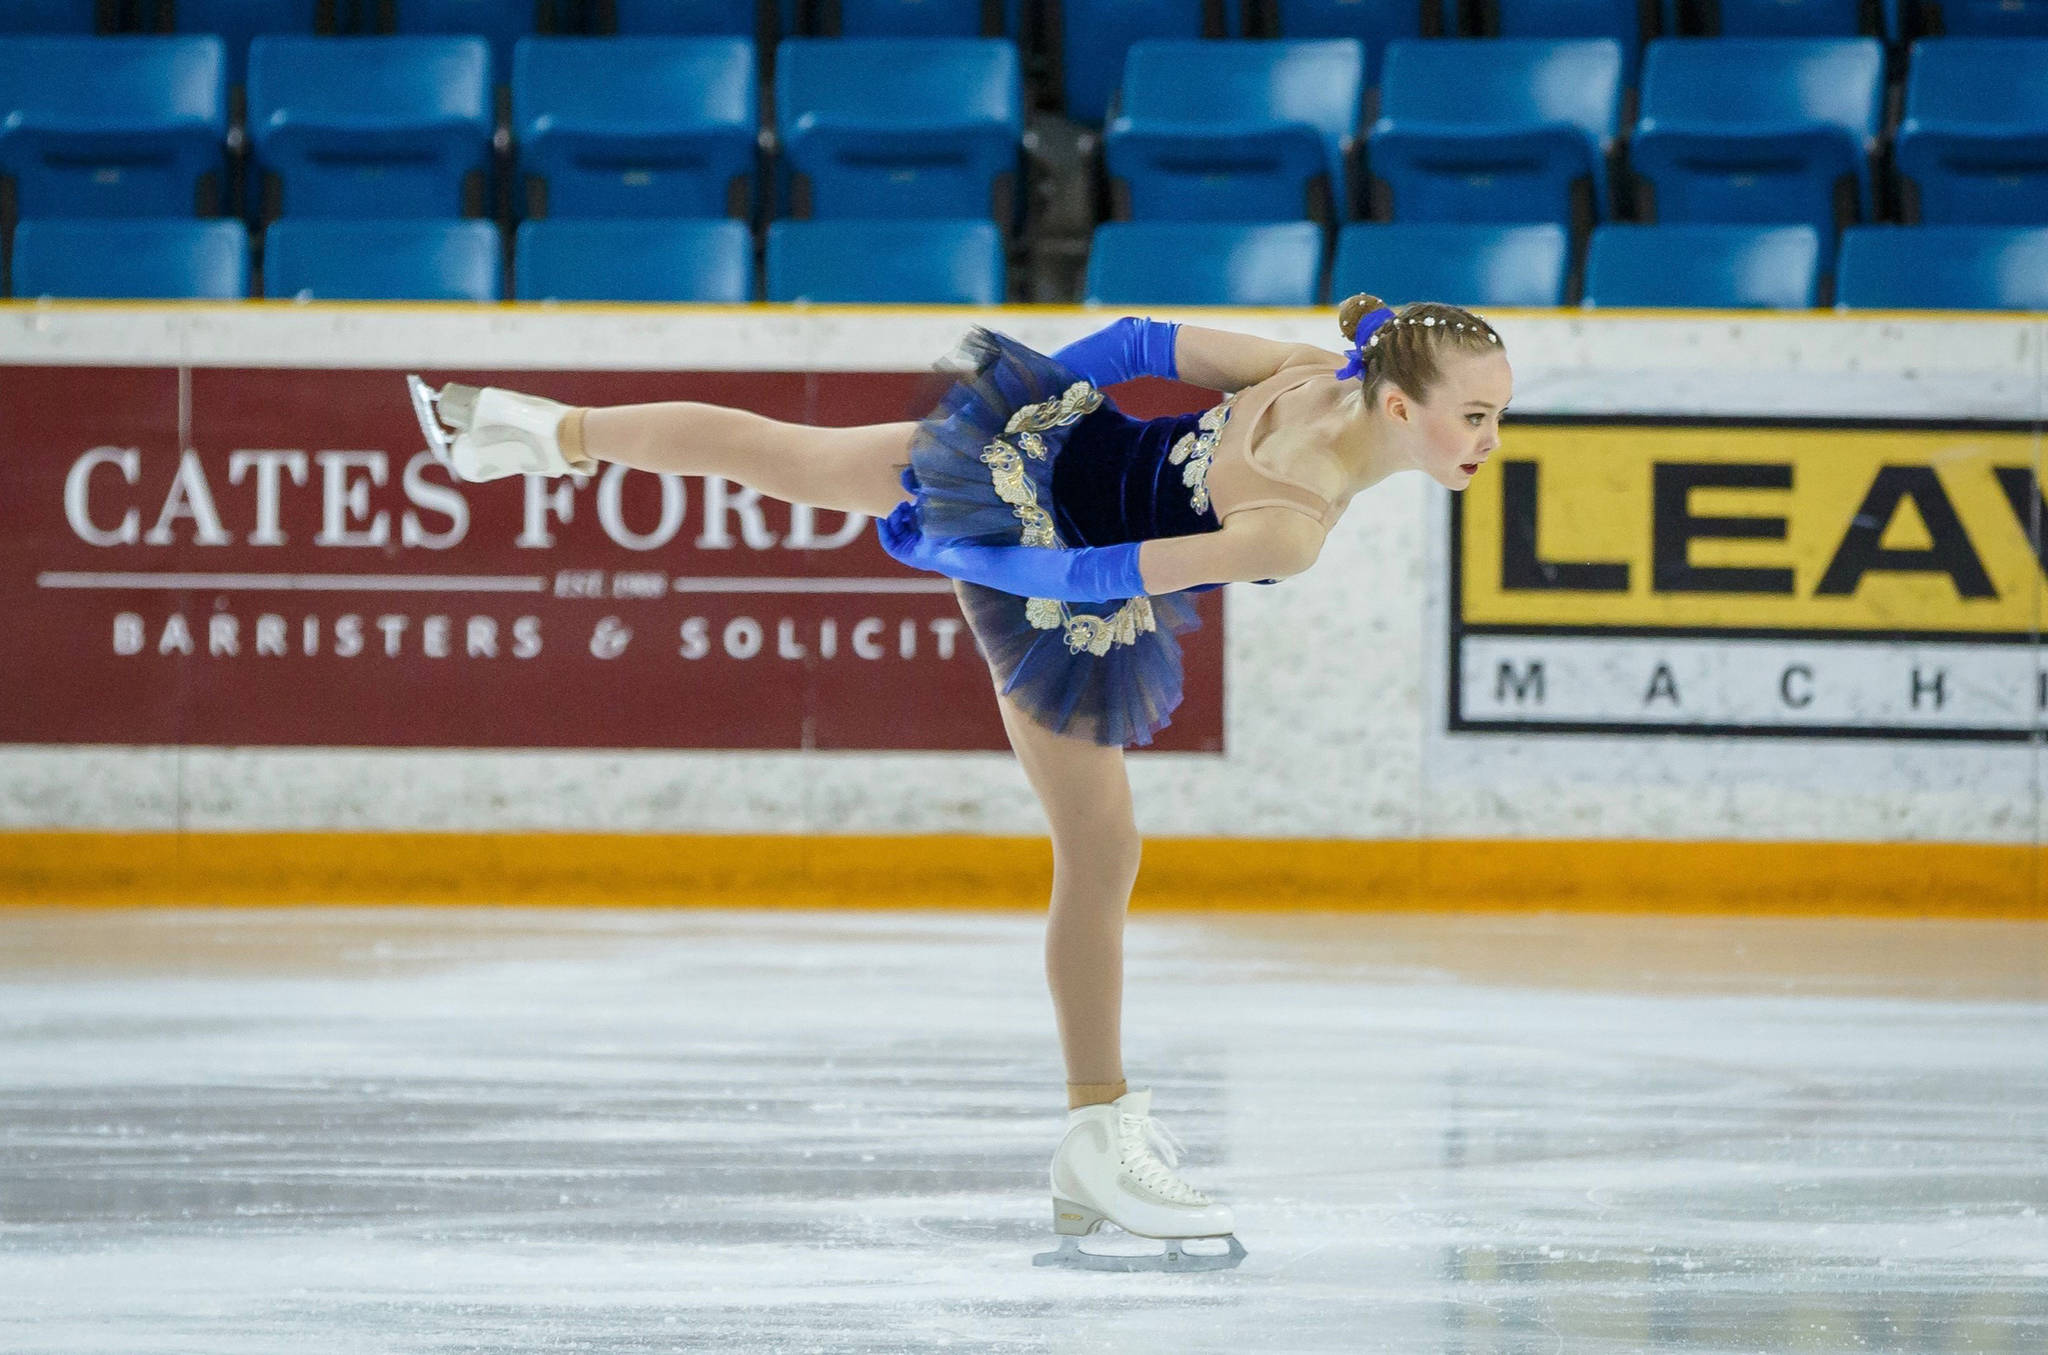 That's a wrap: B.C. Games results after Day 1